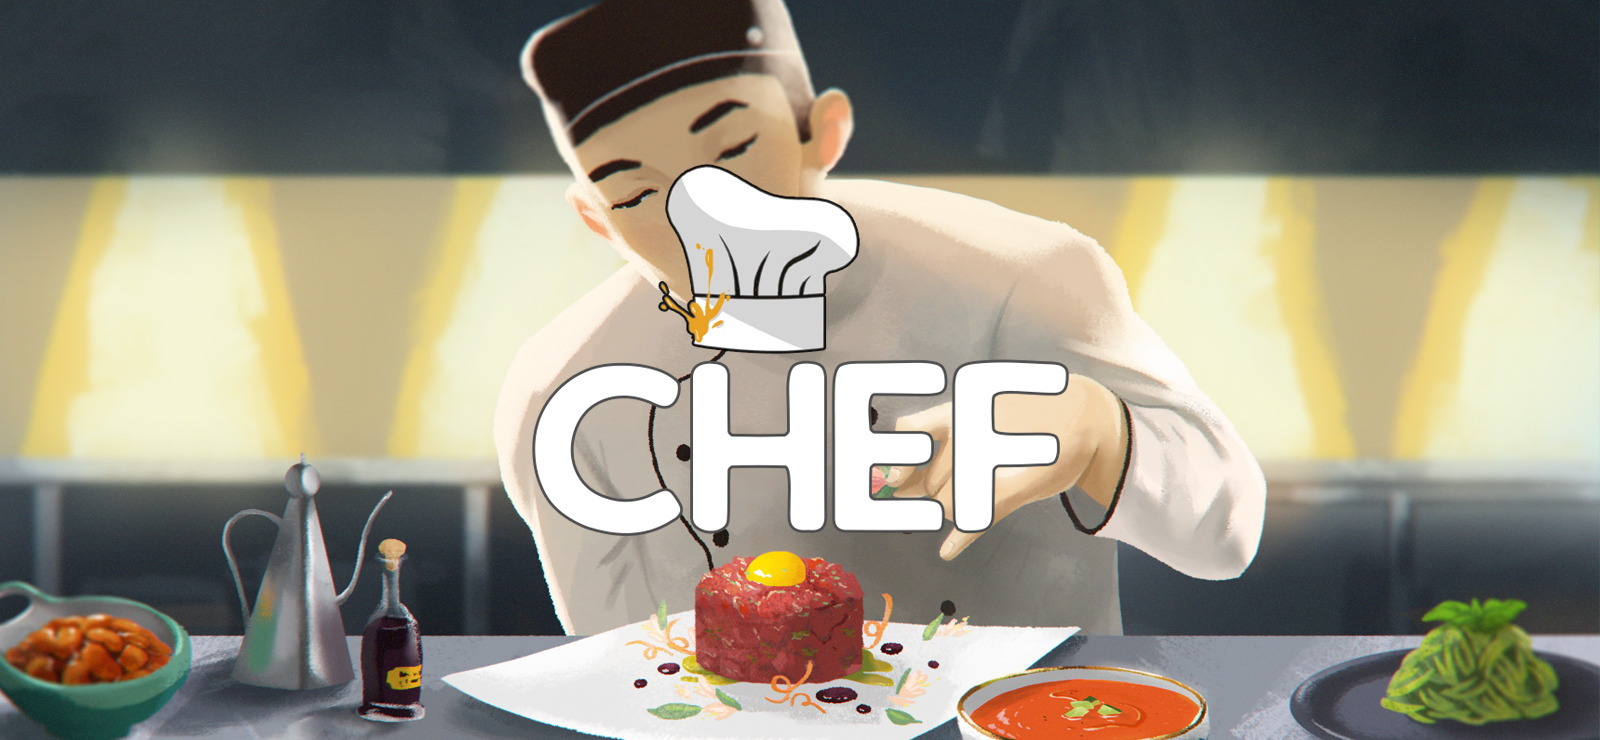 Chef A Restaurant Tycoon Game Eastern Asian Cuisine Free Download